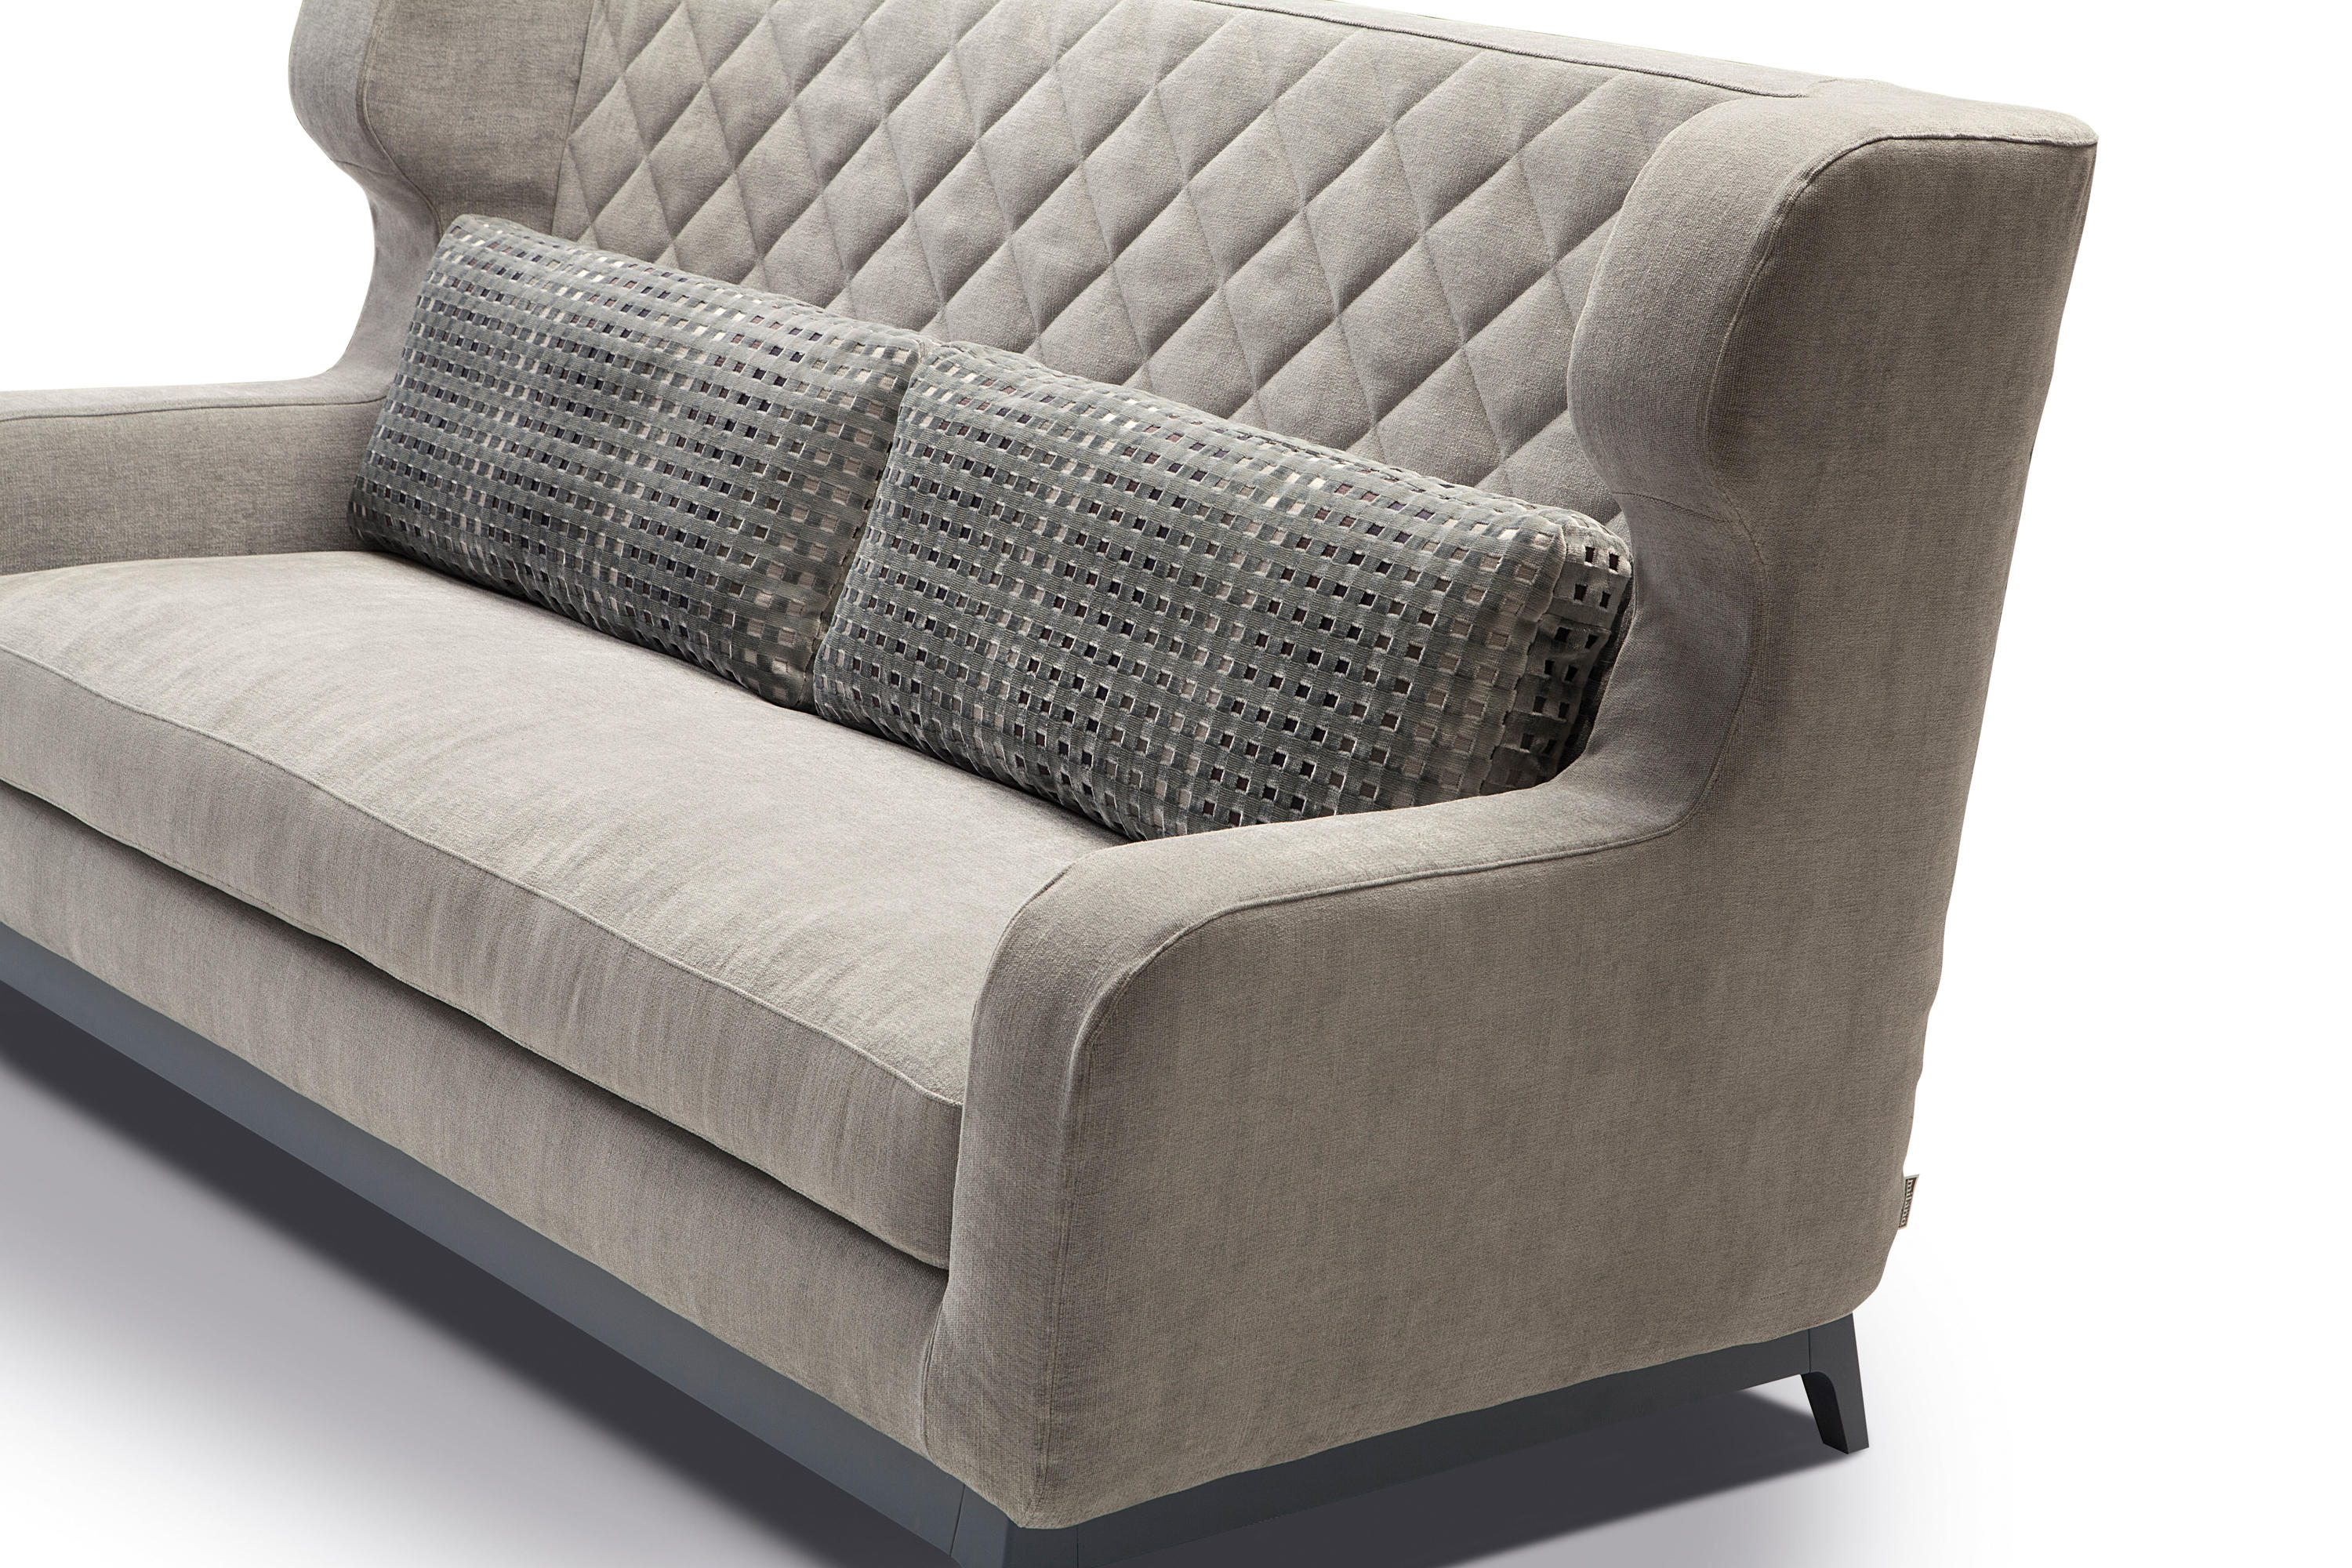 morgan sofa beds from milano bedding architonic. Black Bedroom Furniture Sets. Home Design Ideas